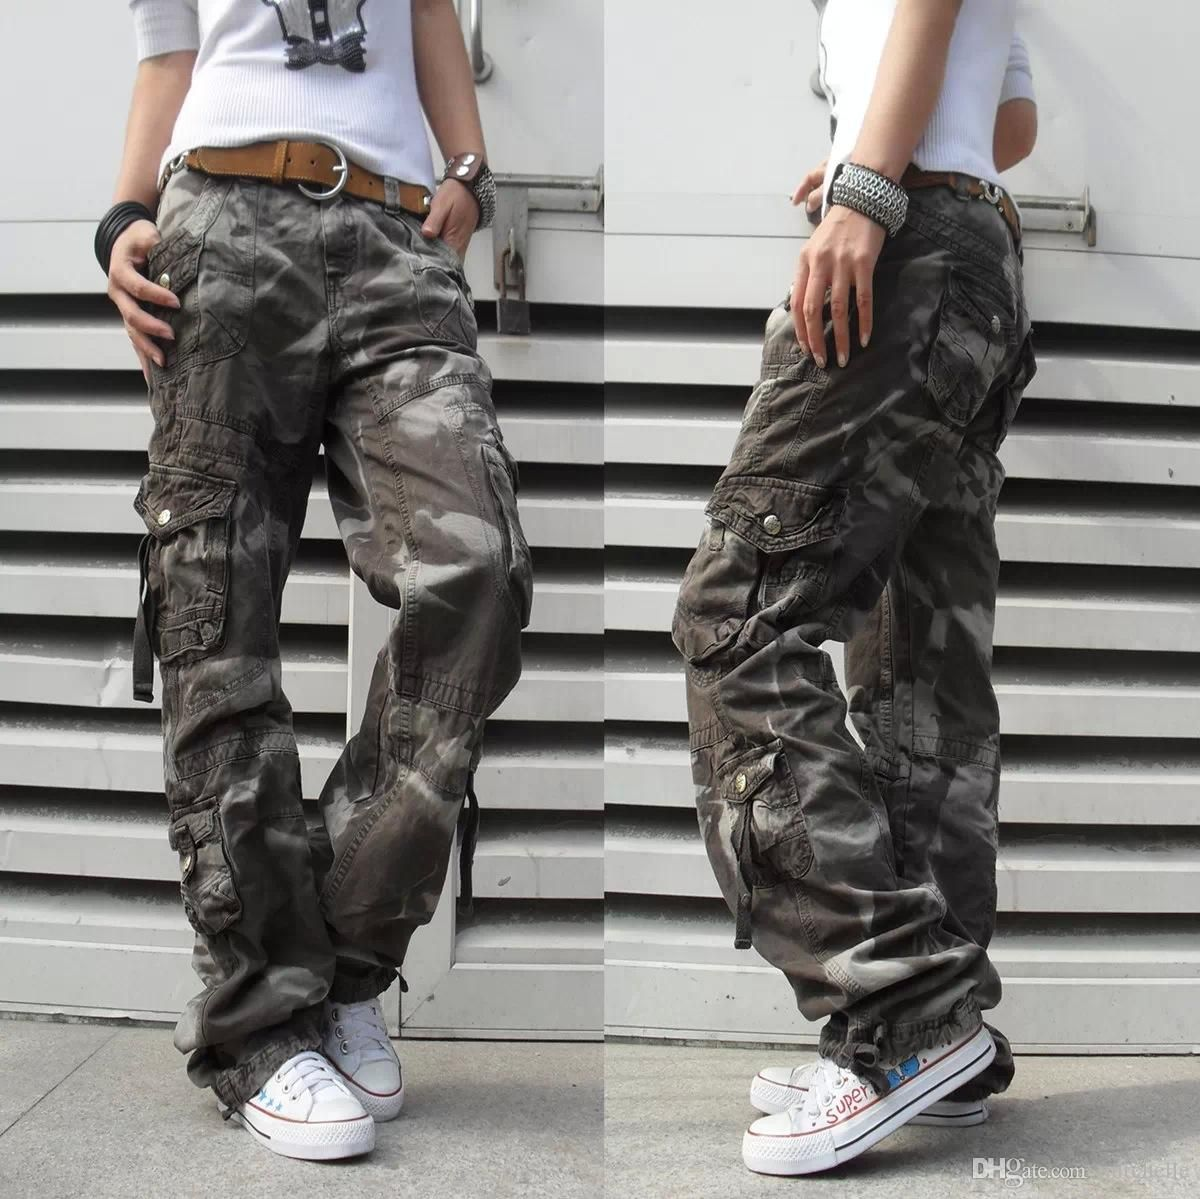 a851e683185 Women s Winter Thick Pants Womens Army Fatigue Pants Camouflage Cargo Pants  Hip Hop Harem Baggy Pants Multi Pocket Trousers 18